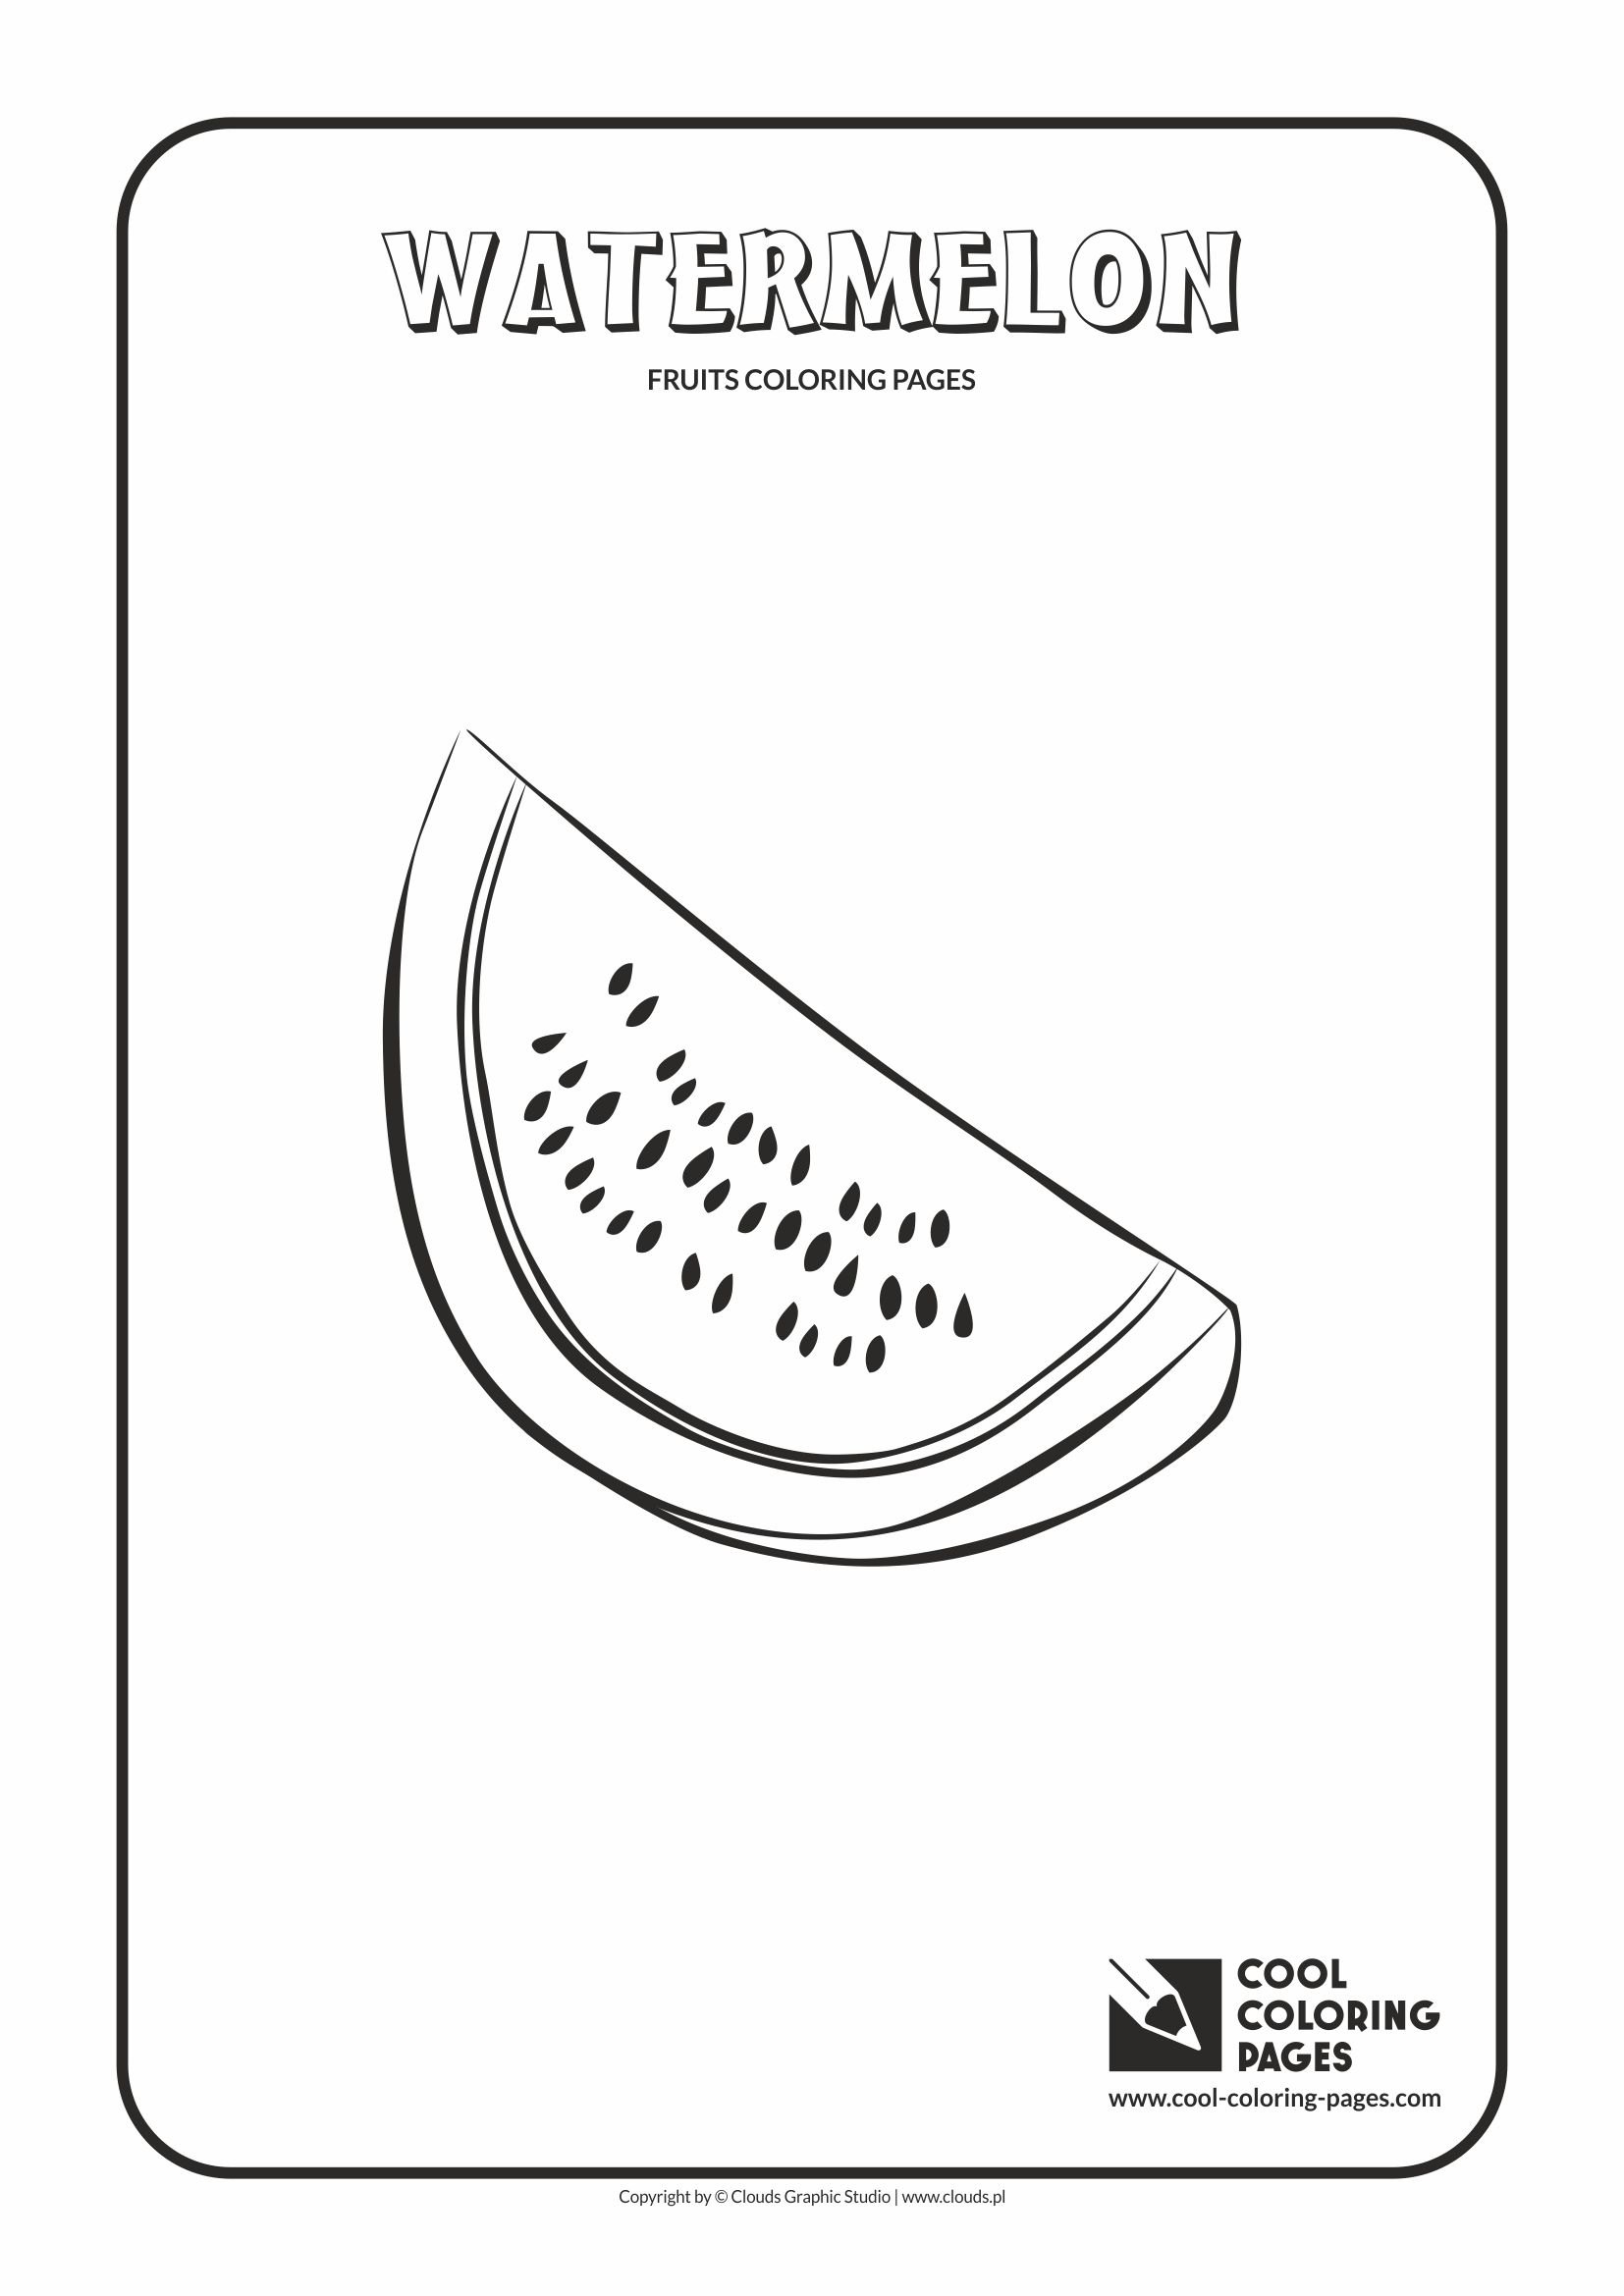 Cool Coloring Pages - Plants / Watermelon / Coloring page with watermelon